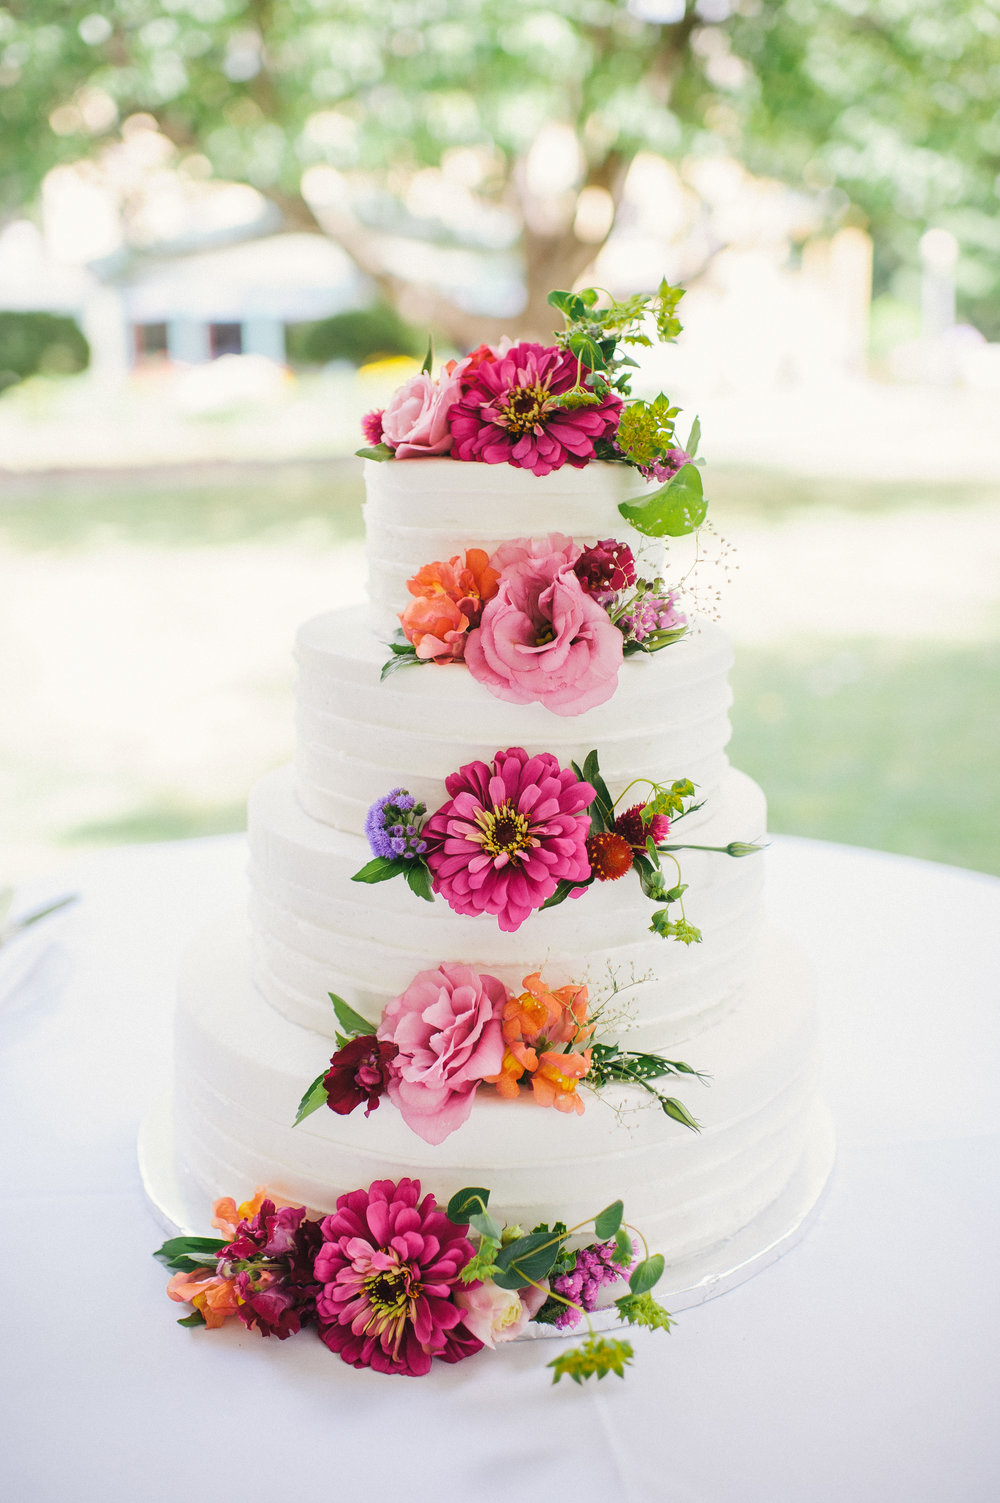 Wedding cake flowers, courtesy of Ayres Photography